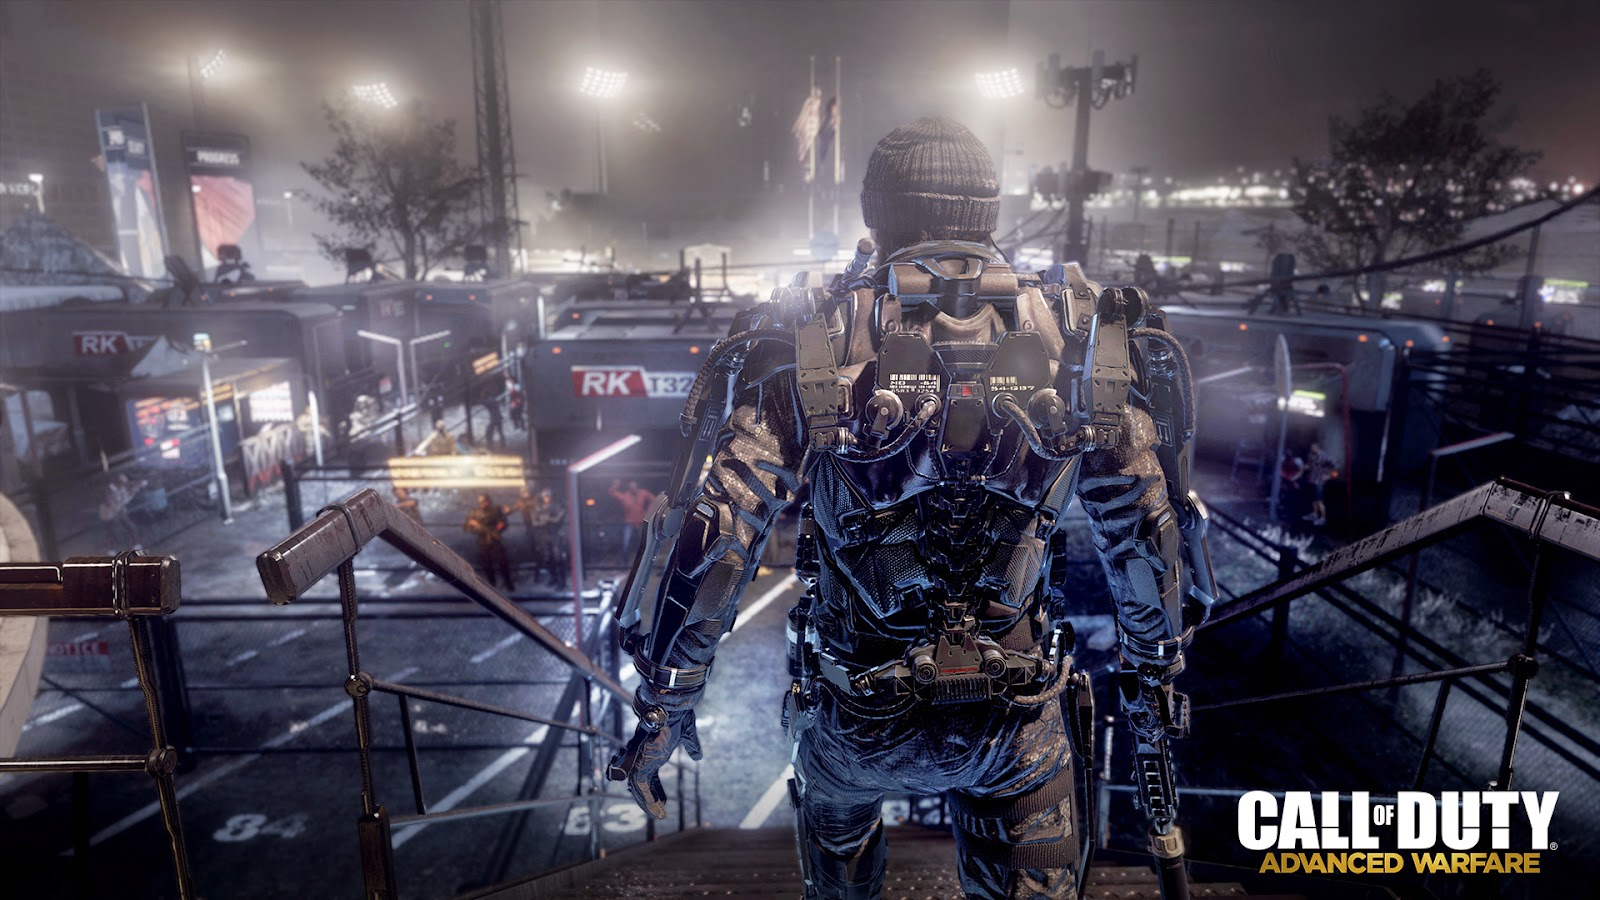 Call of duty advanced warfare wallpaper game play